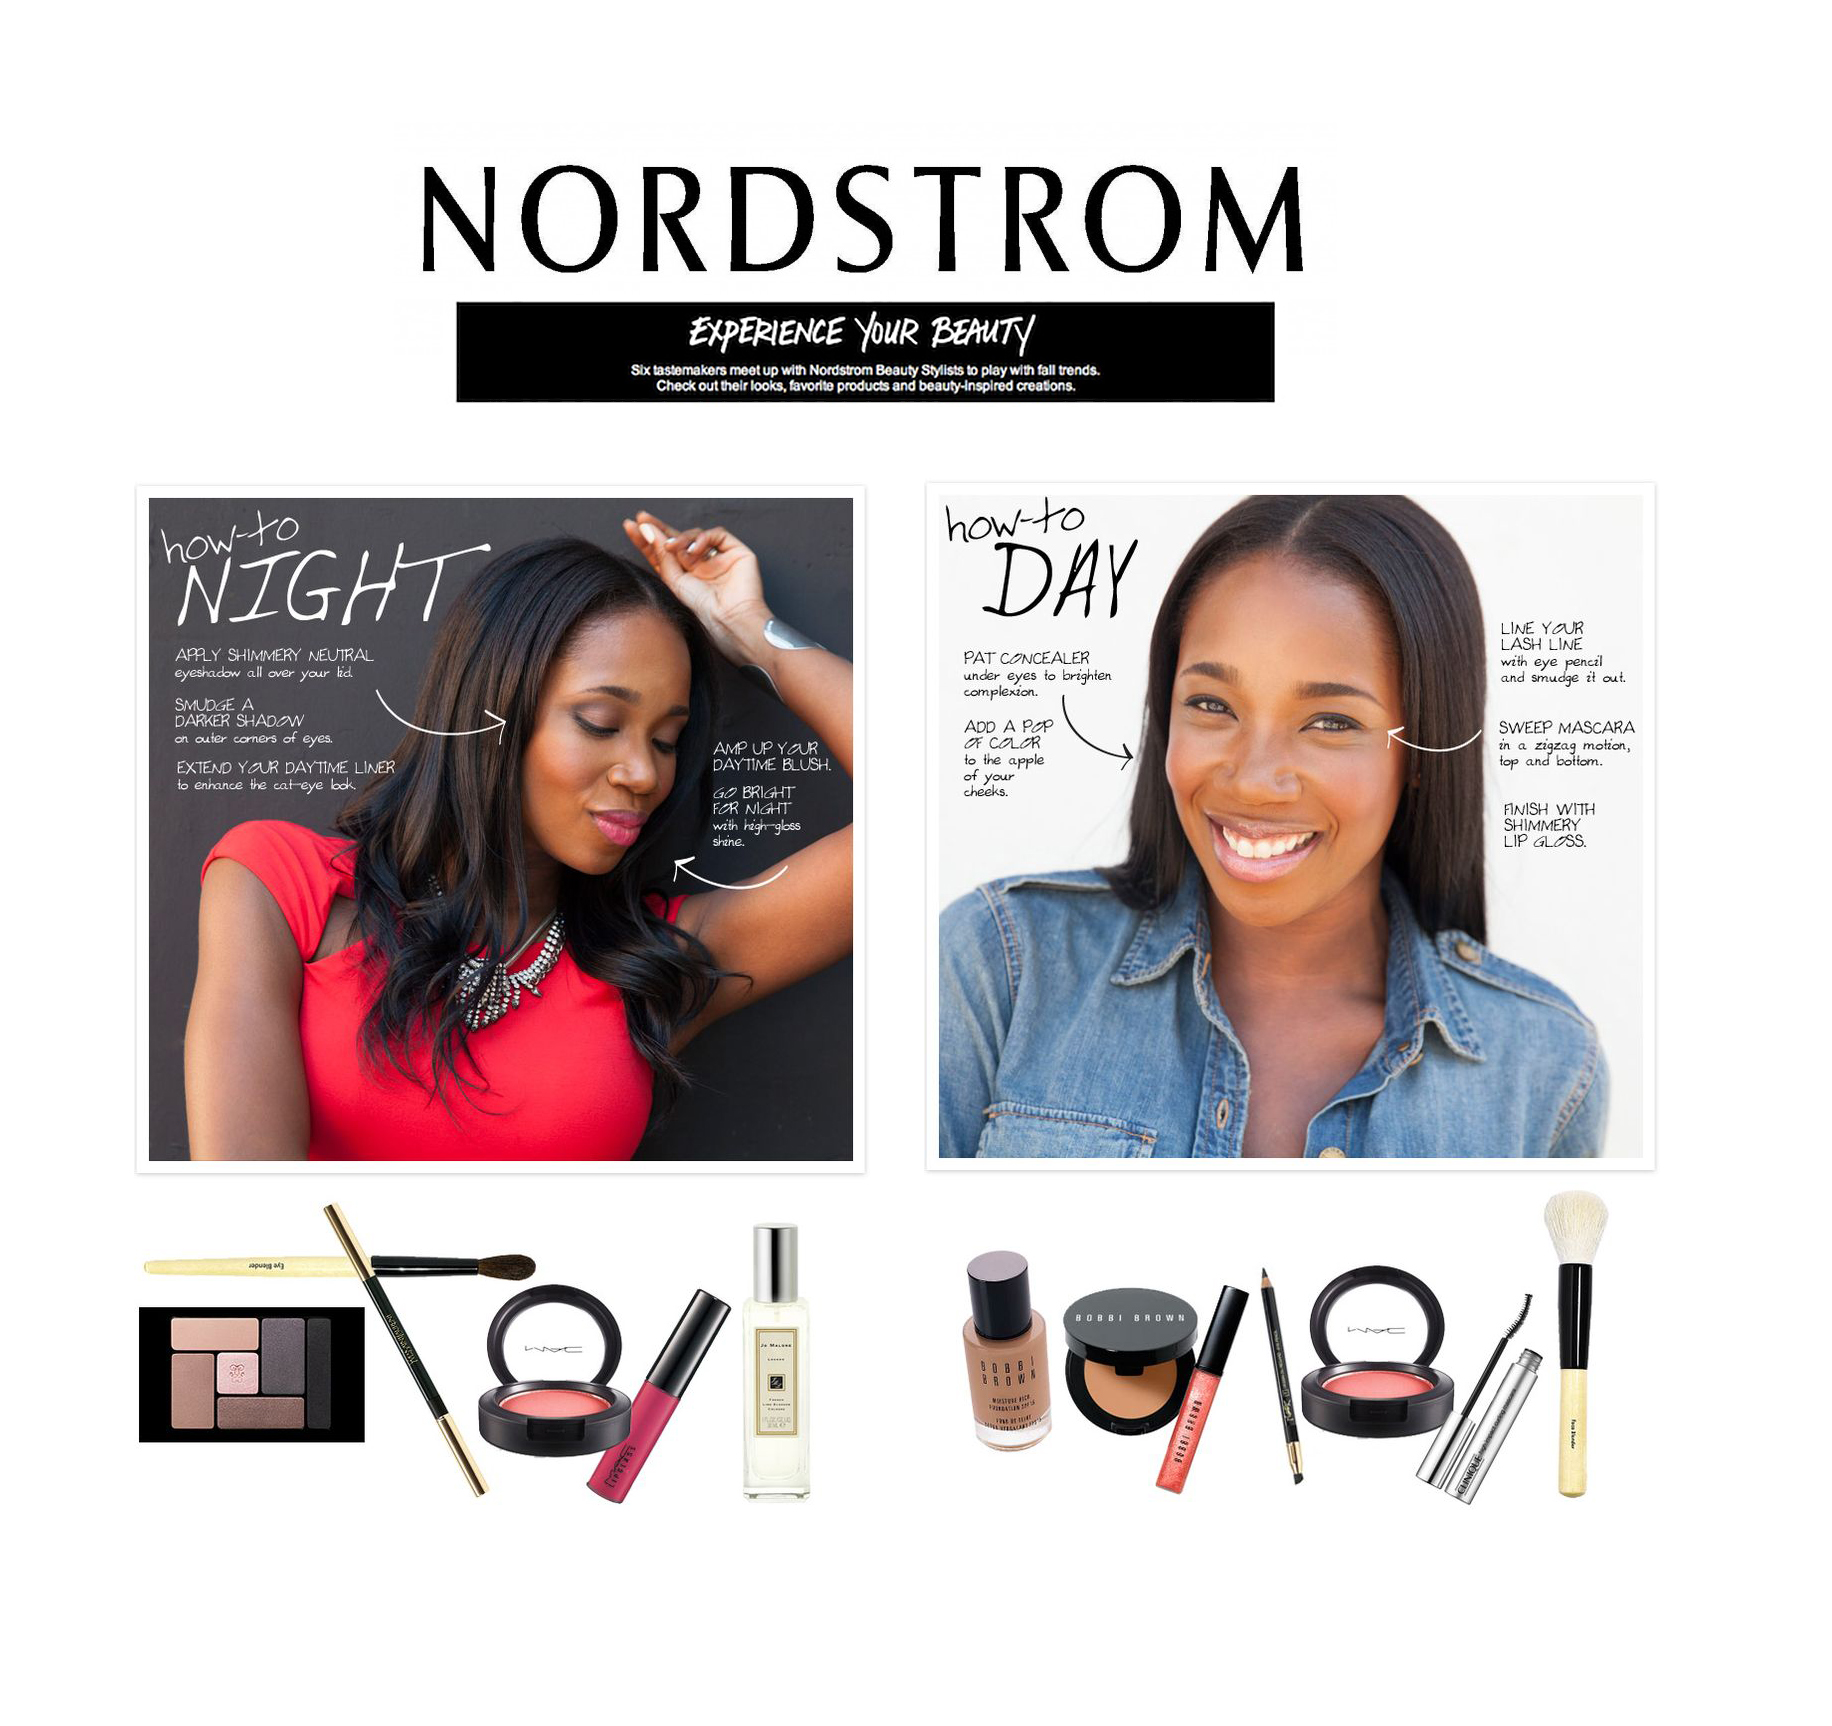 Nordstrom Experience Your Beauty